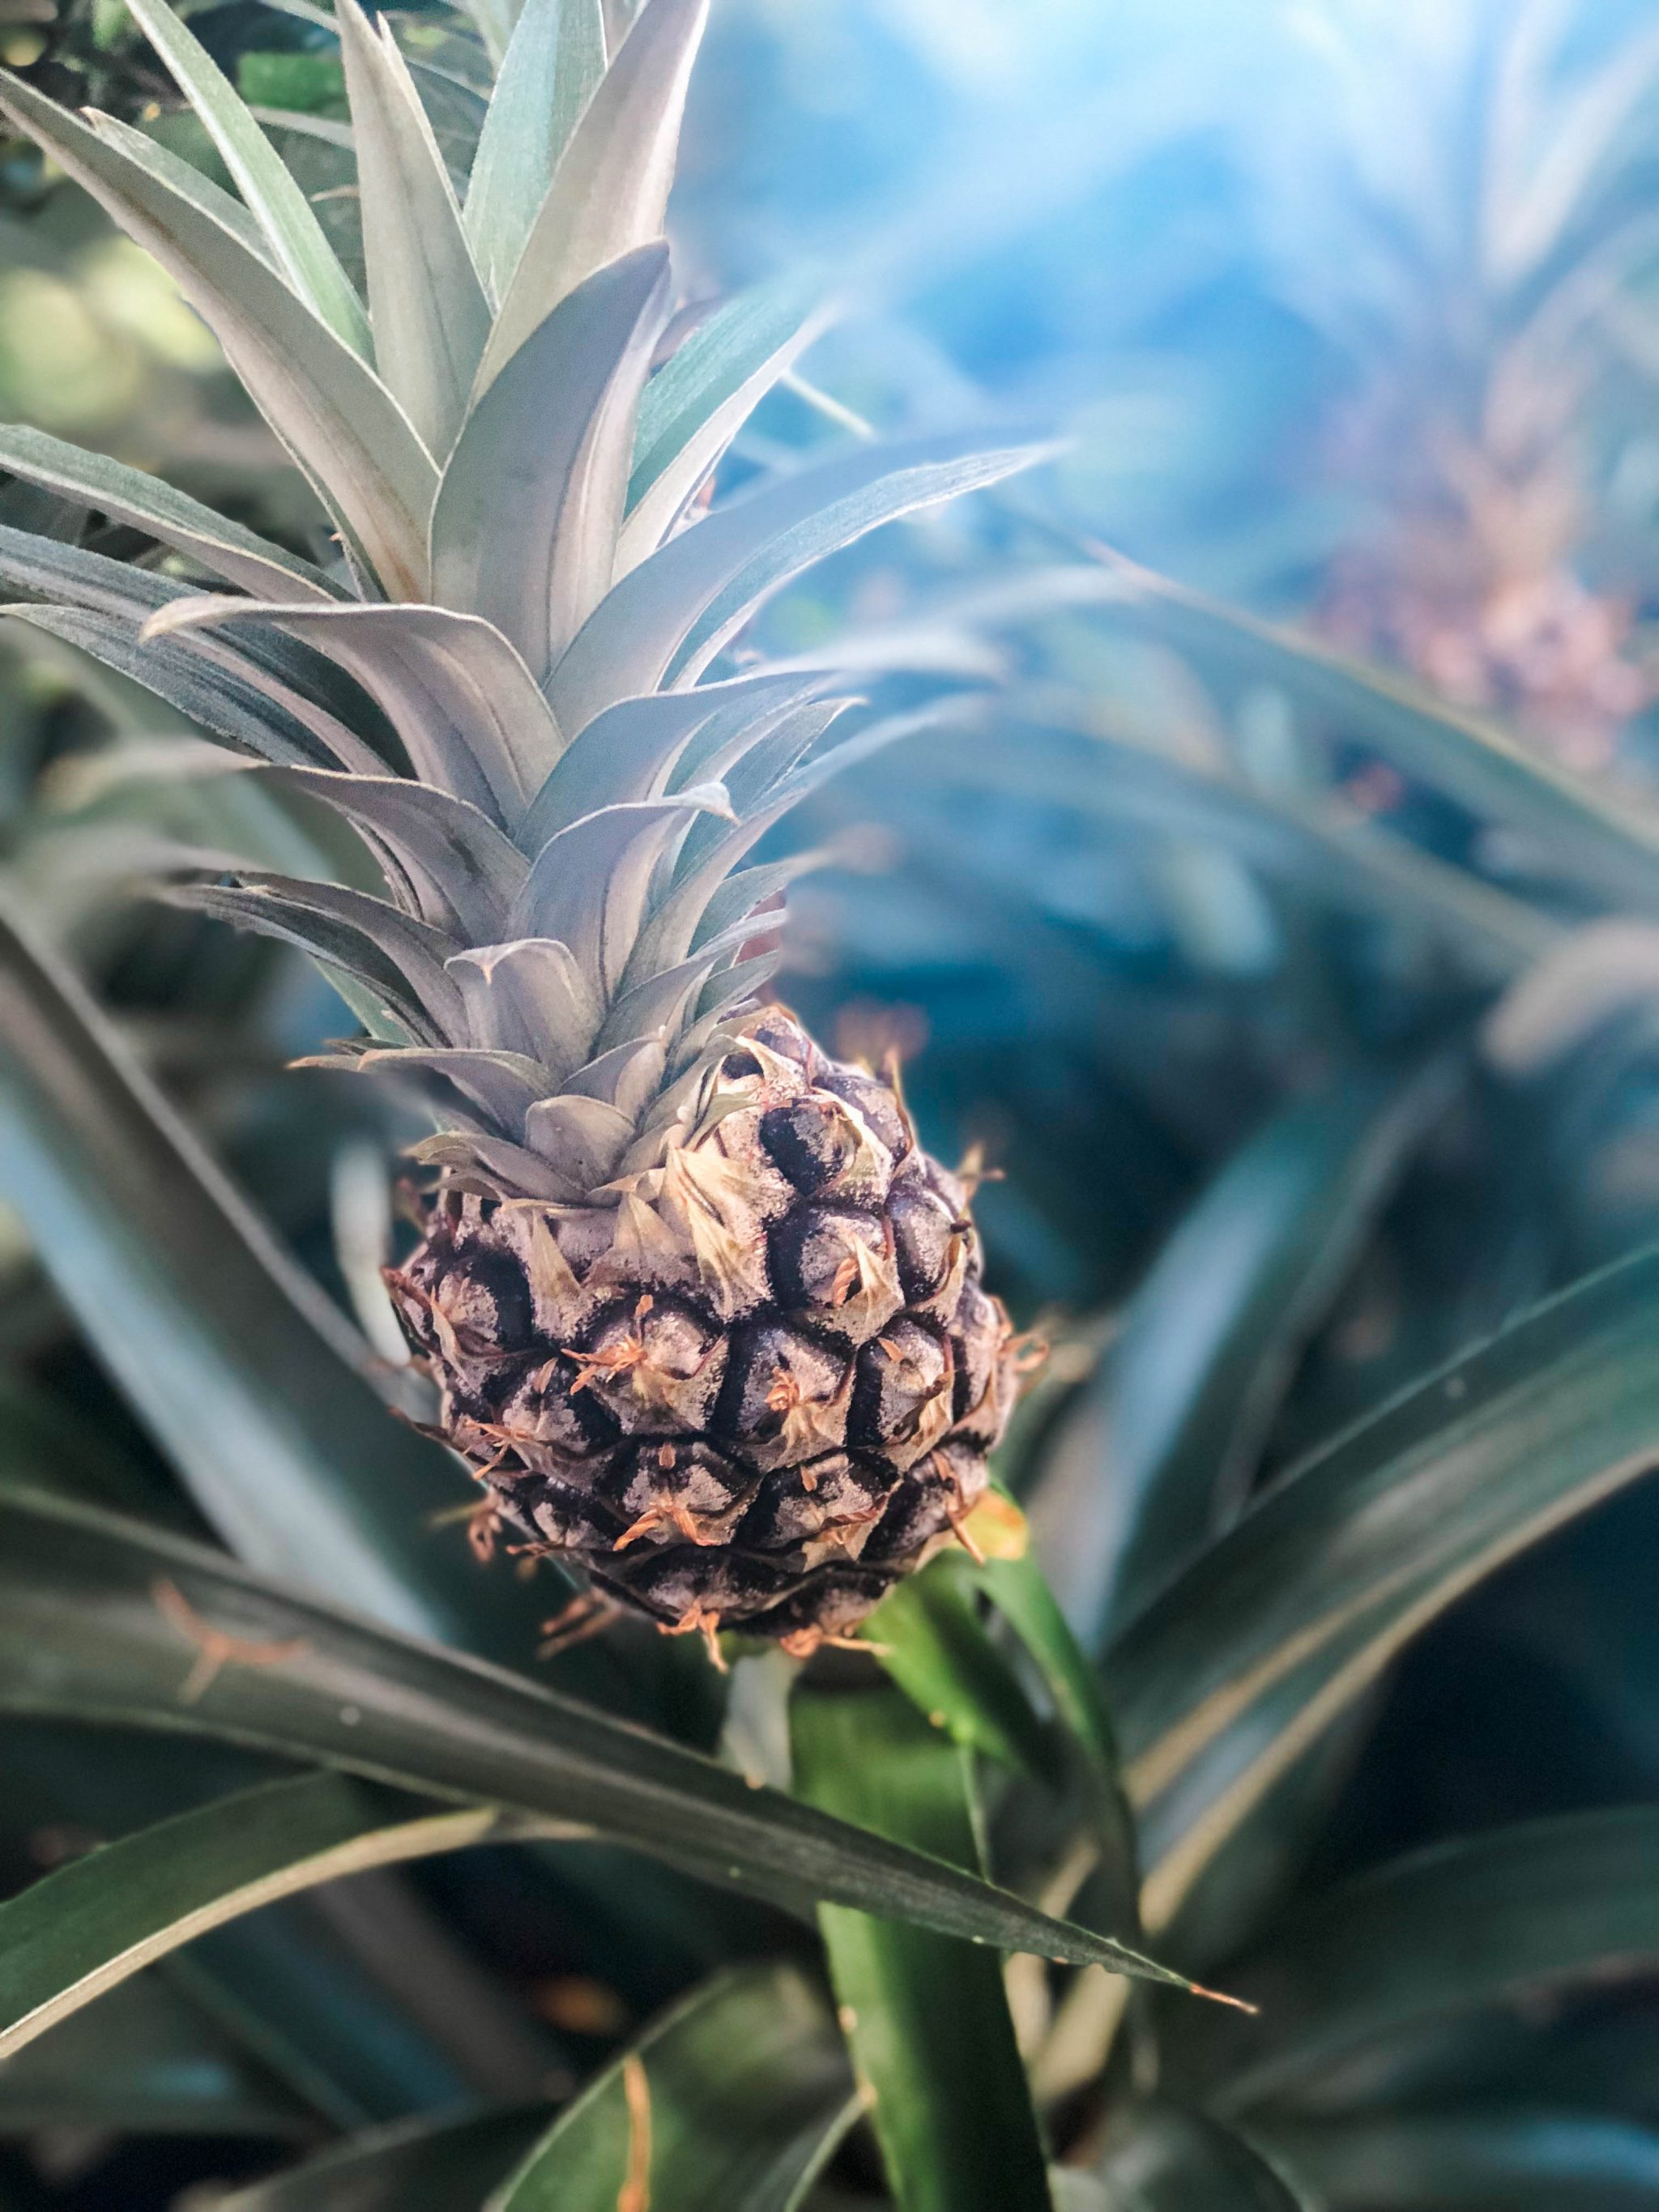 local Maui pineapple plants